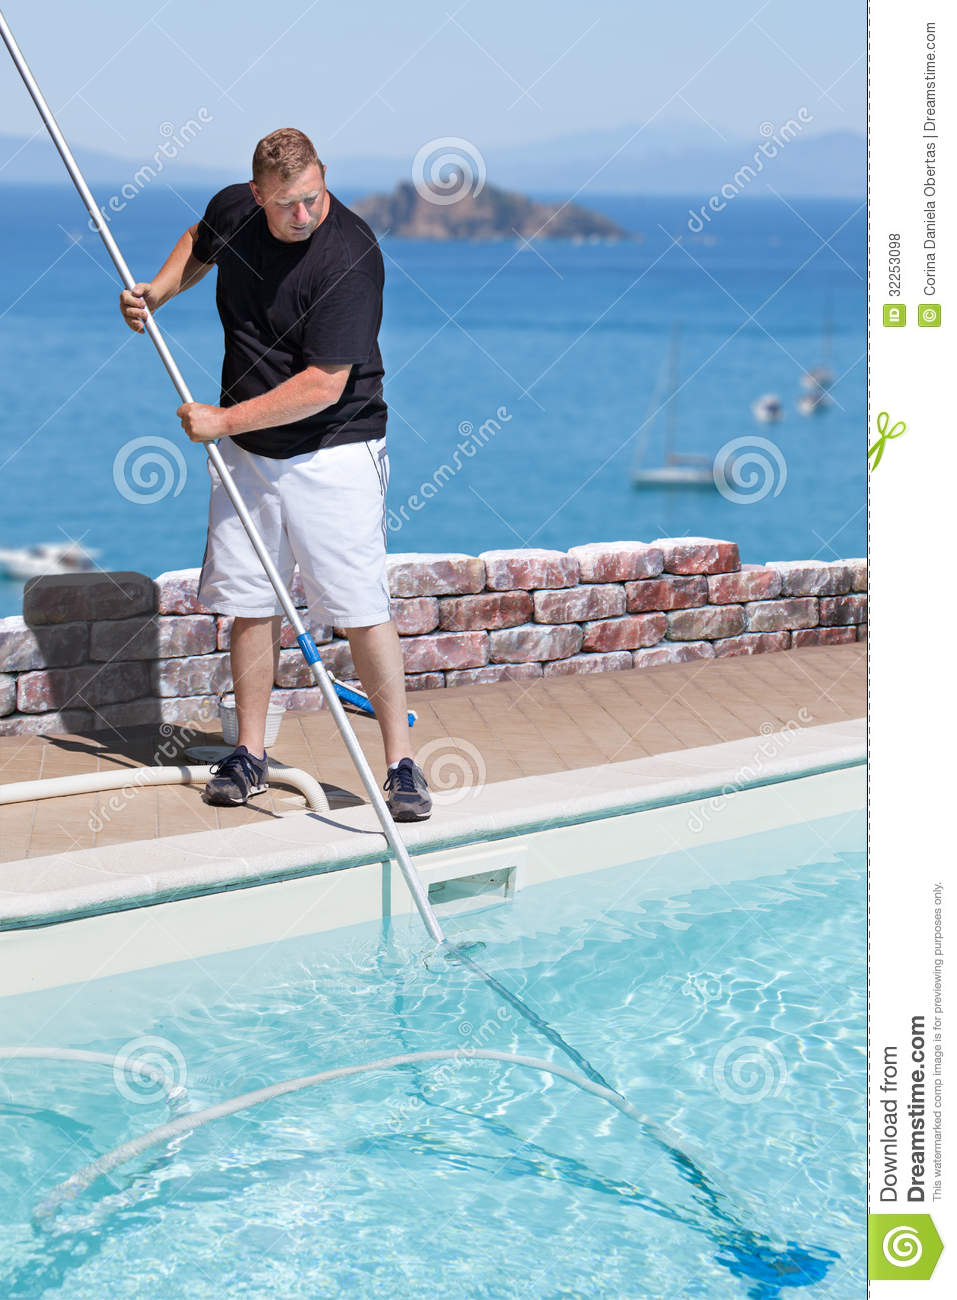 Man Cleaning Swimming Pool Above The Sea Royalty Free Stock Photos Image 32253098